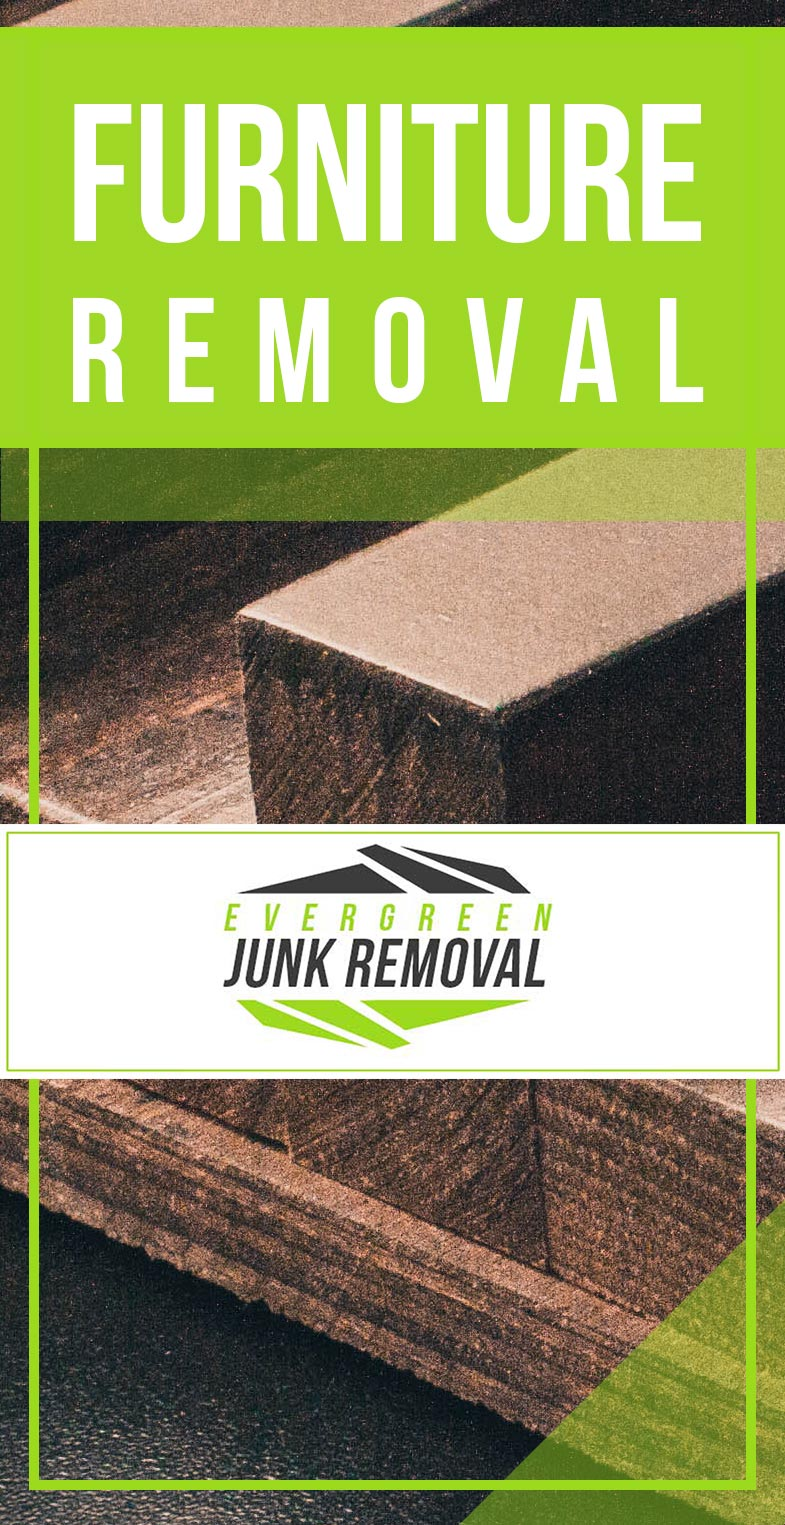 Junk Removal South Bay Furniture Removal